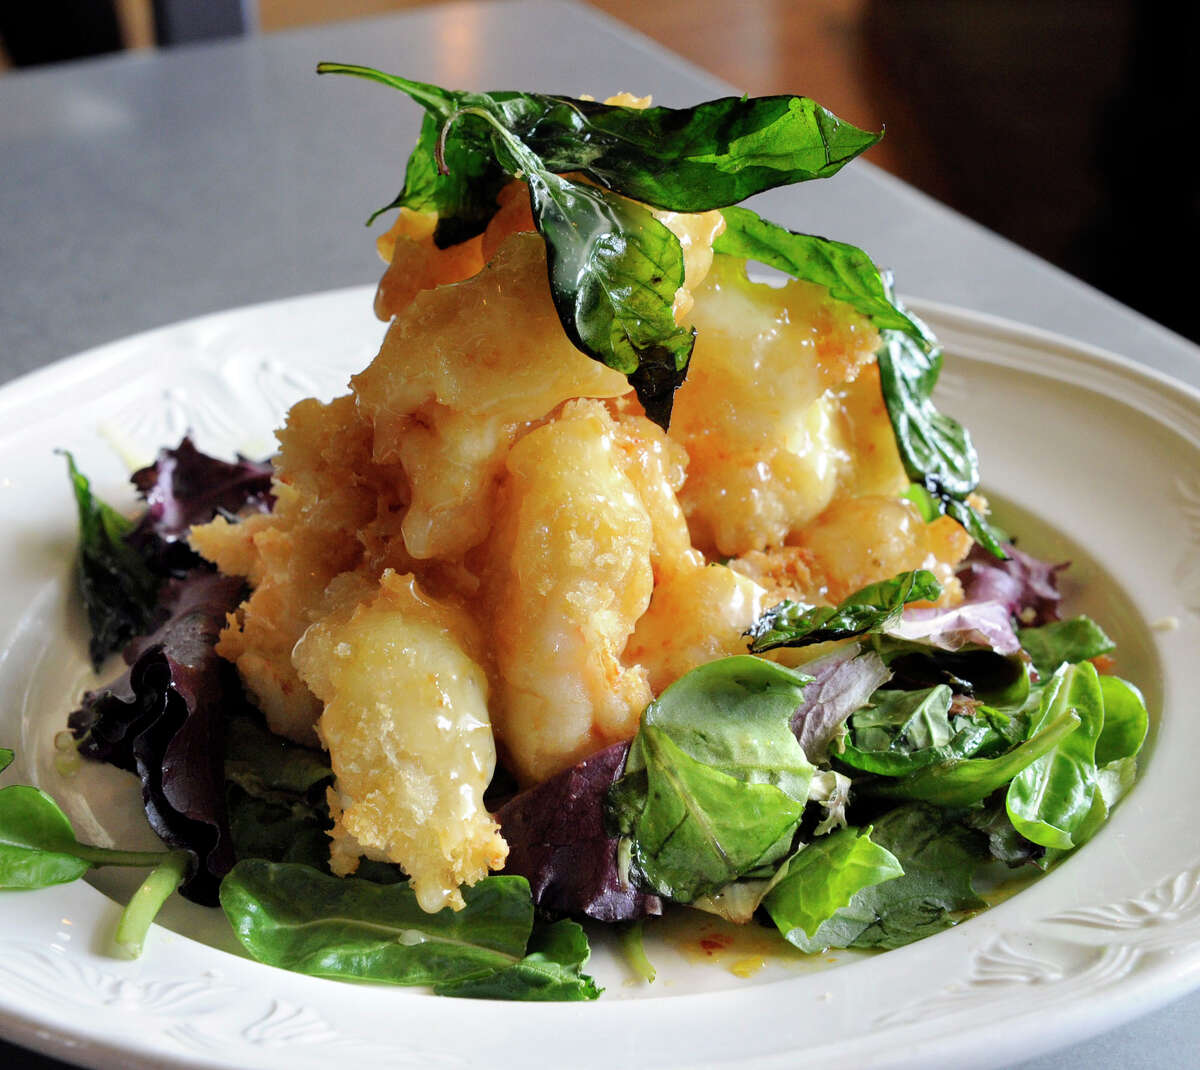 Tempura Schrimp at Wild Ginger in Ridgefield. Wild Ginger shut down on Monday, Oct. 23 at the end of its lease.